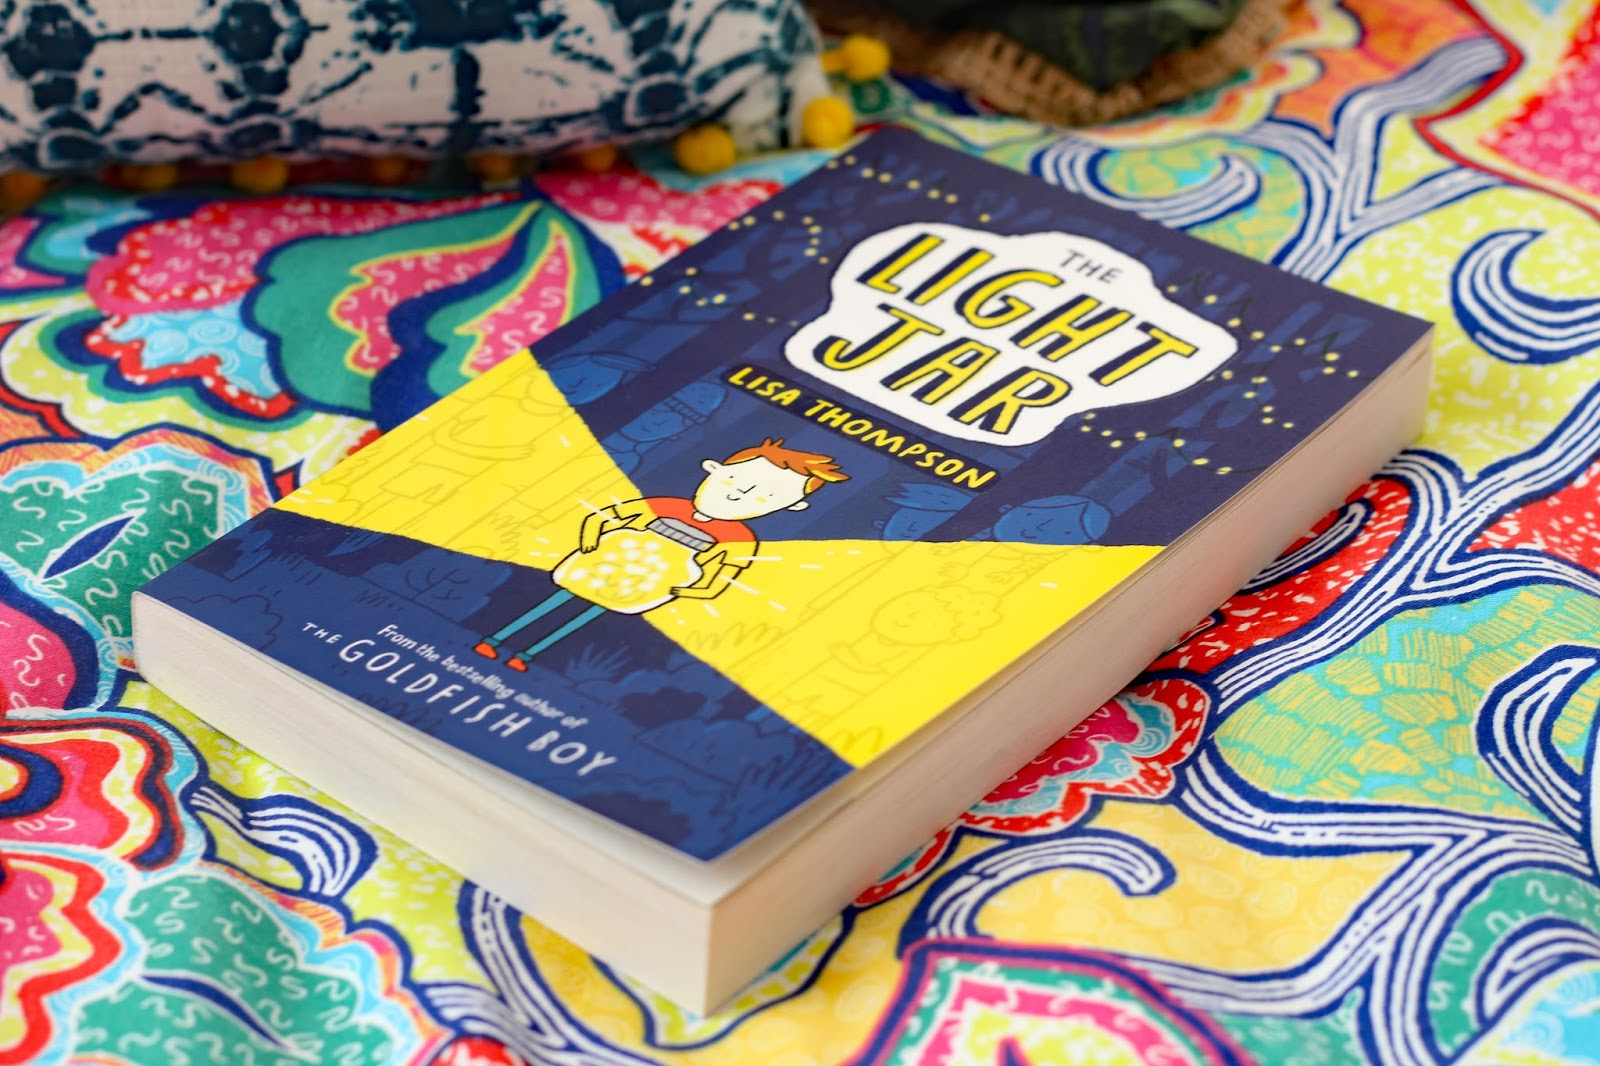 The Light Jar | Book Review book bloggers UK lifestyle children's YA